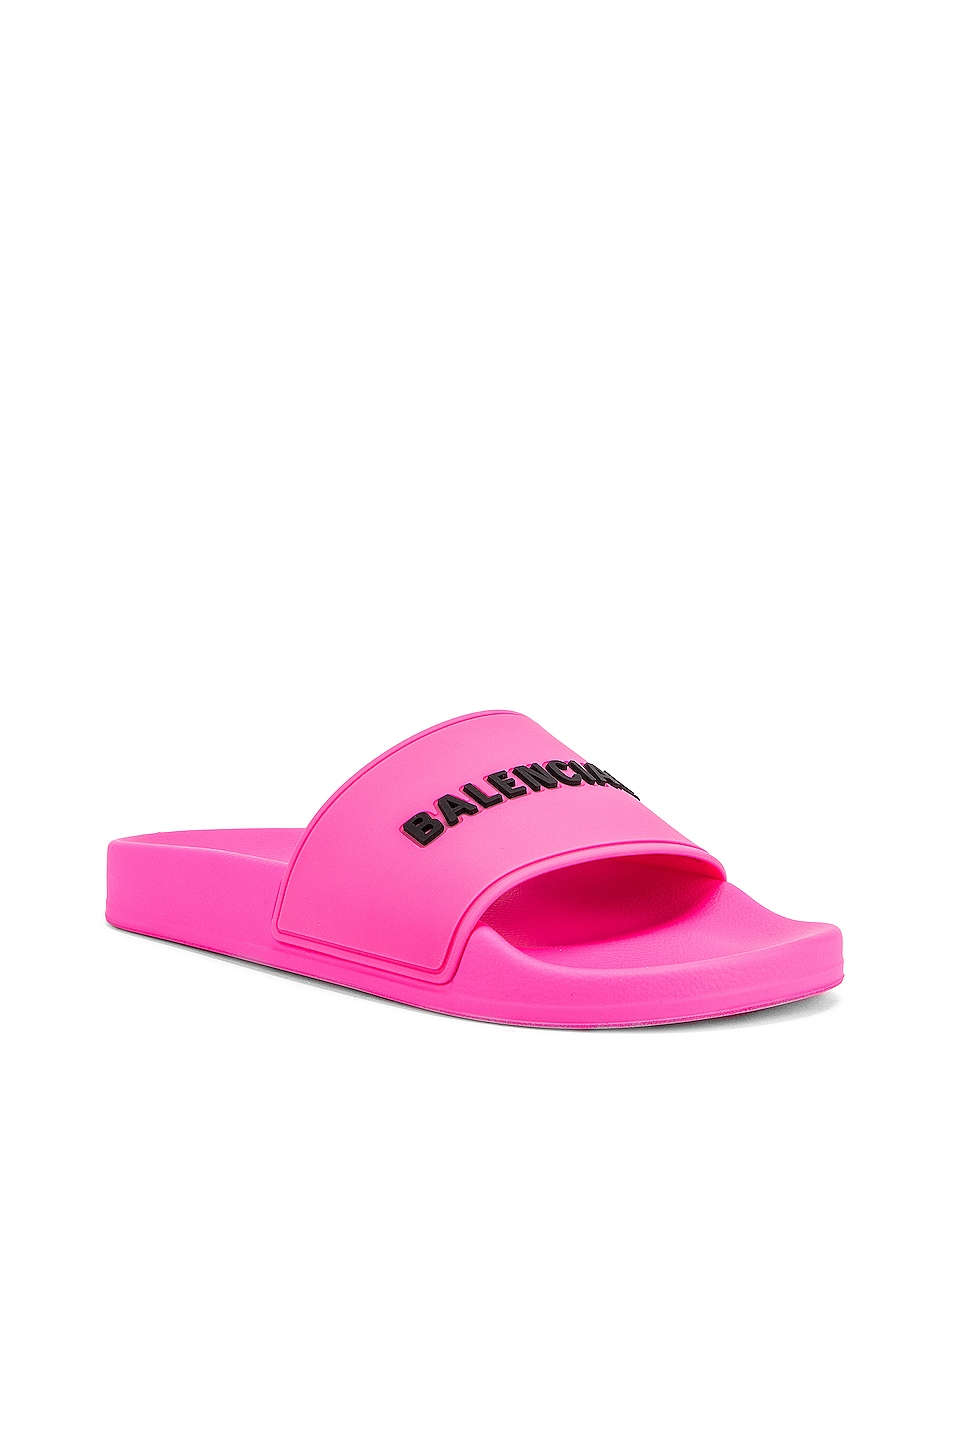 Image 3 of Balenciaga Rubber Logo Pool Slides in Neon Pink & Black